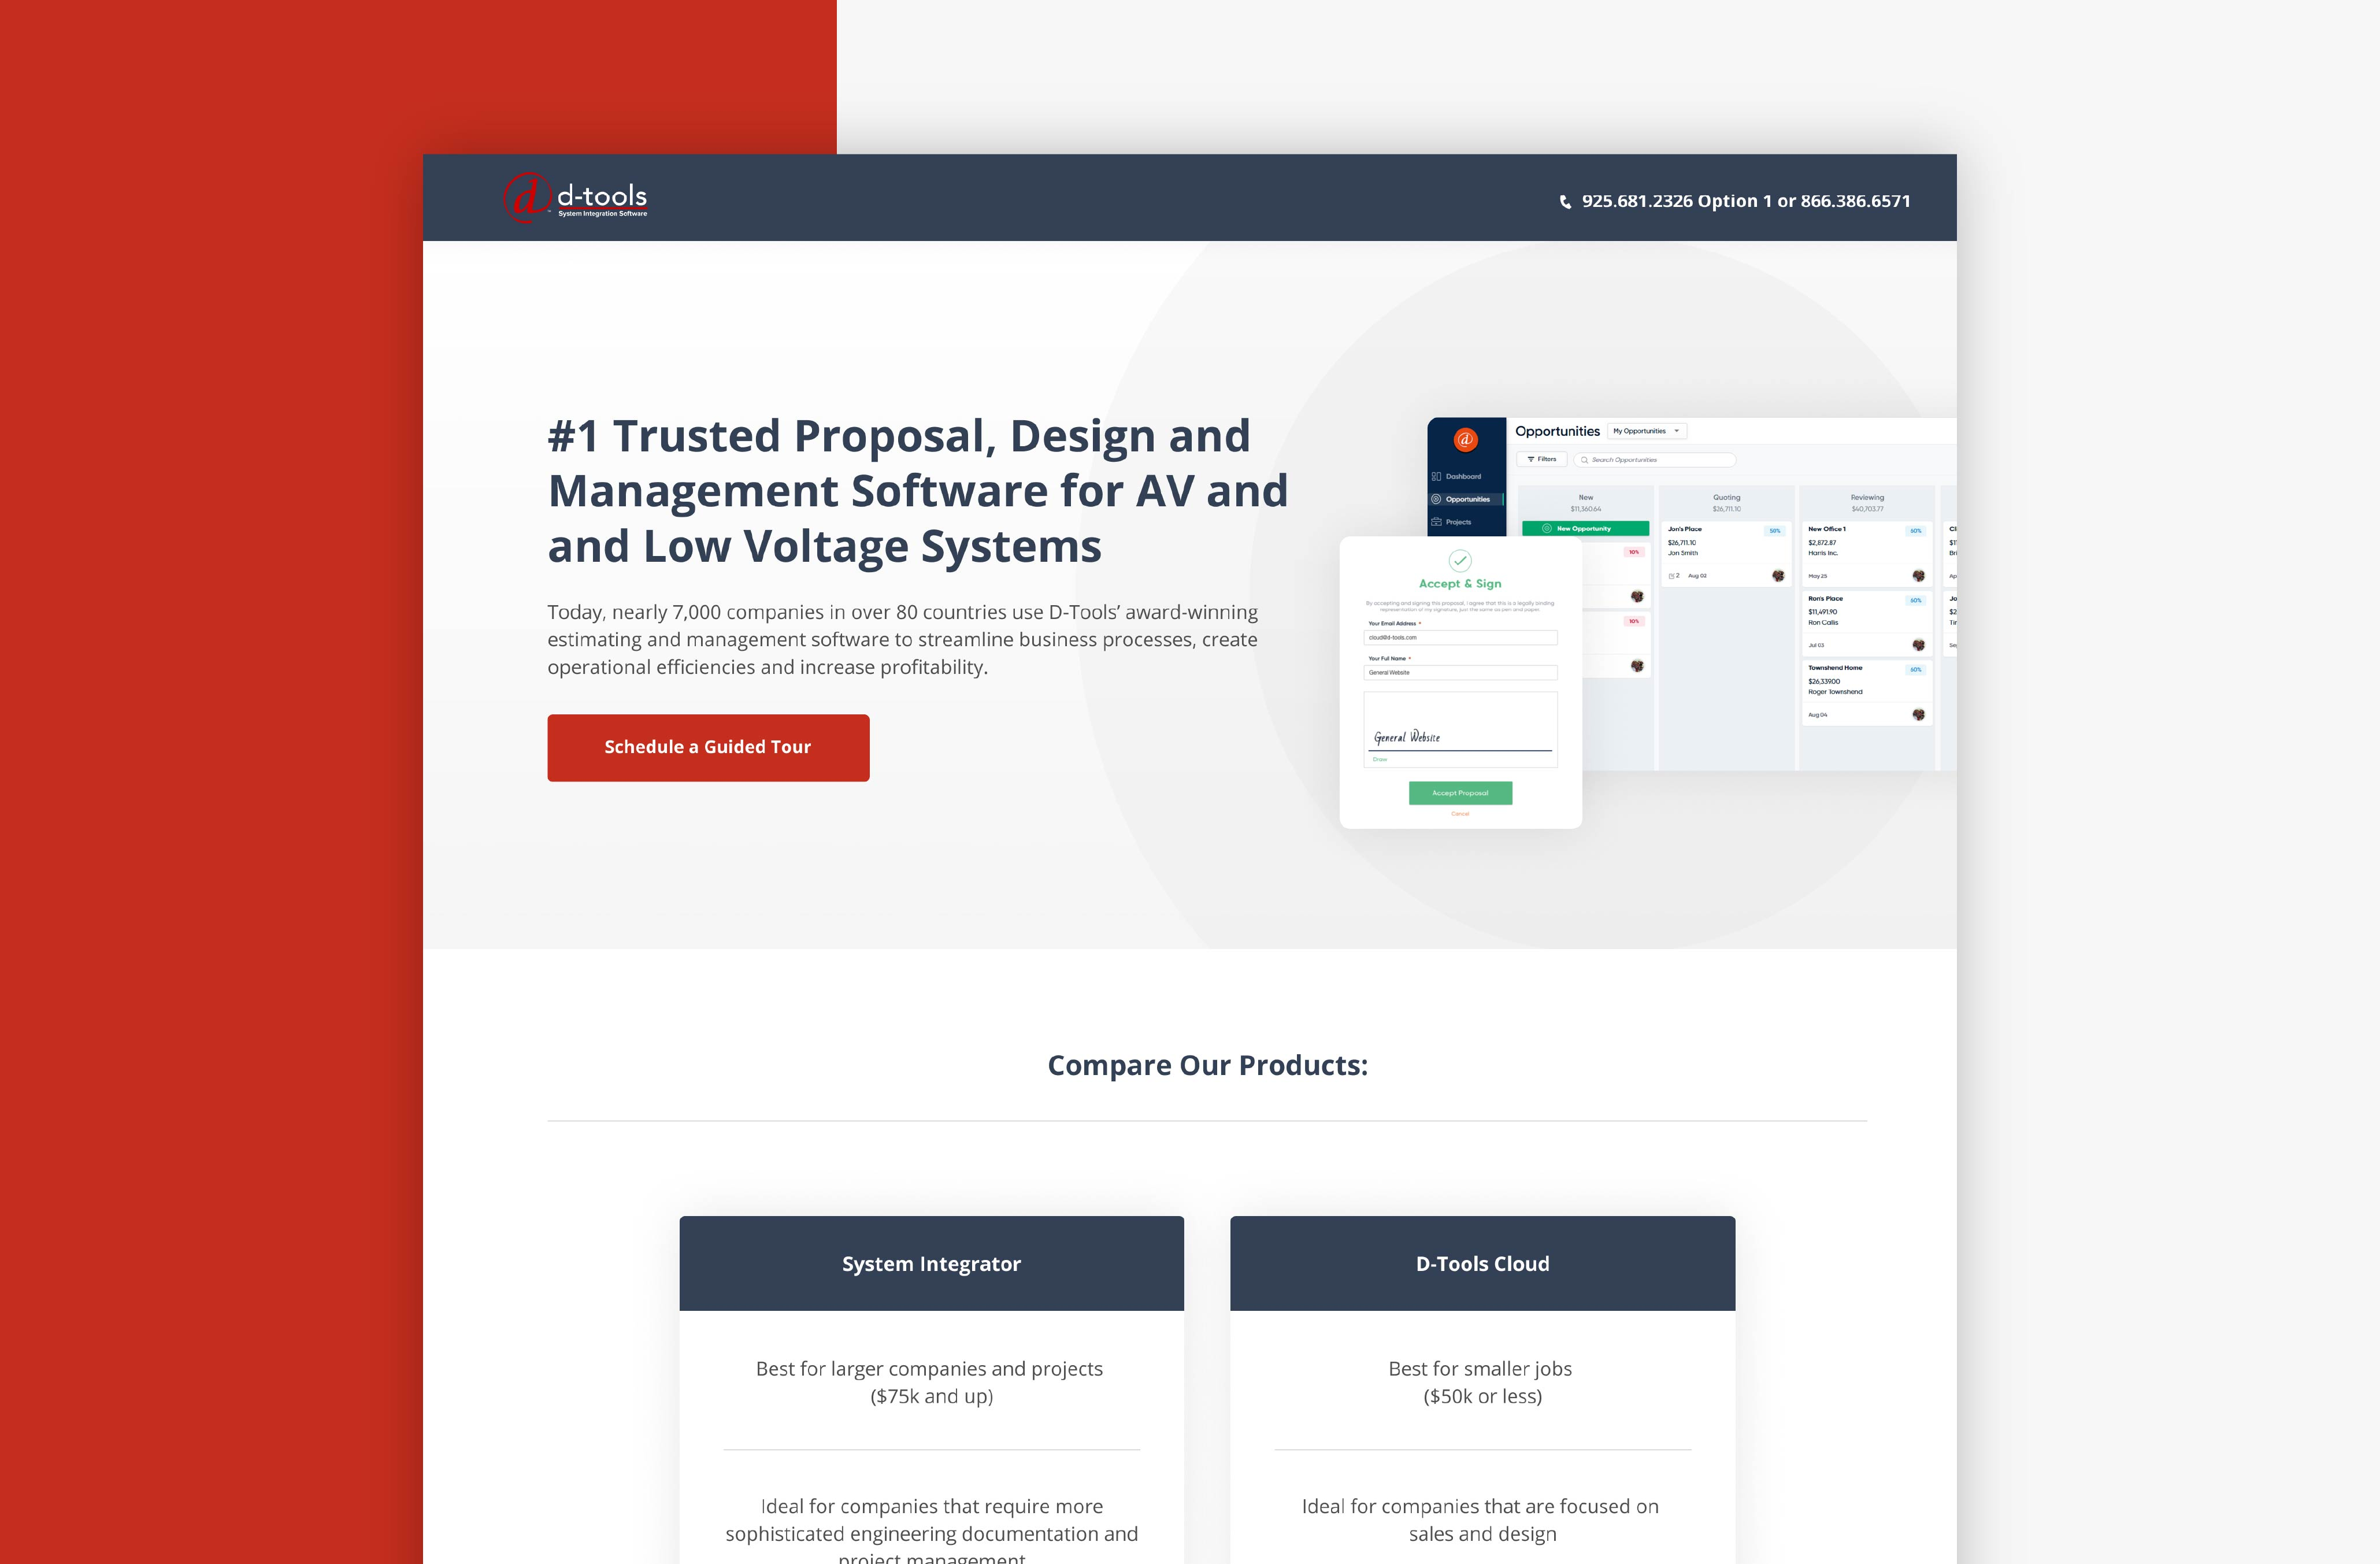 HubSpot Landing Page Design - Above the Fold